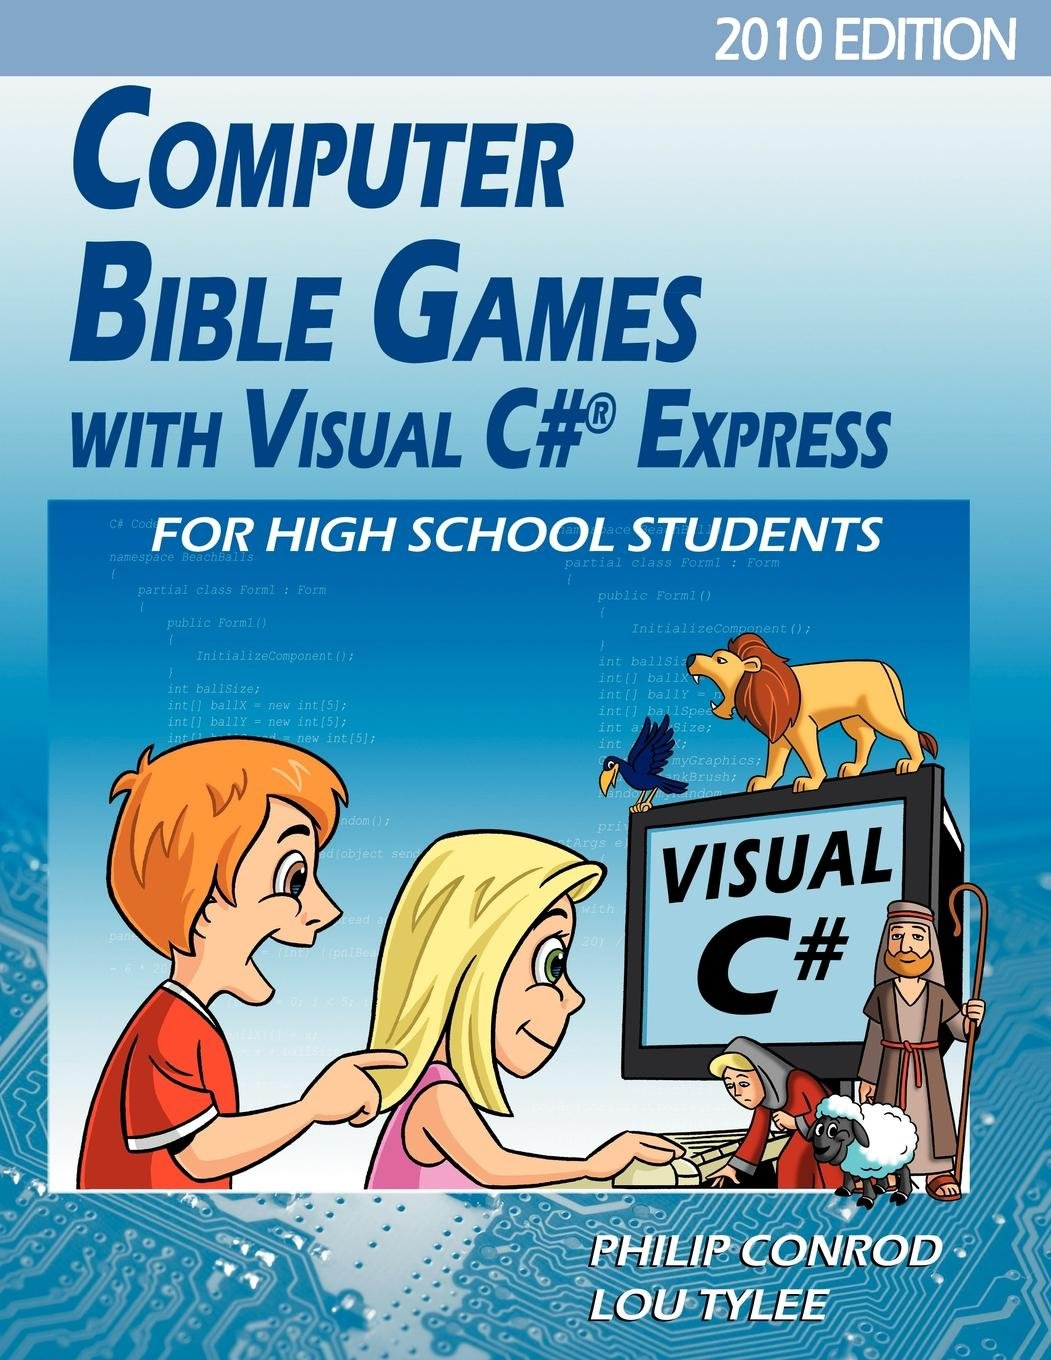 Computer Bible Games With Visual C# Express For High School Students - 2010 Edition by BibleByte Books